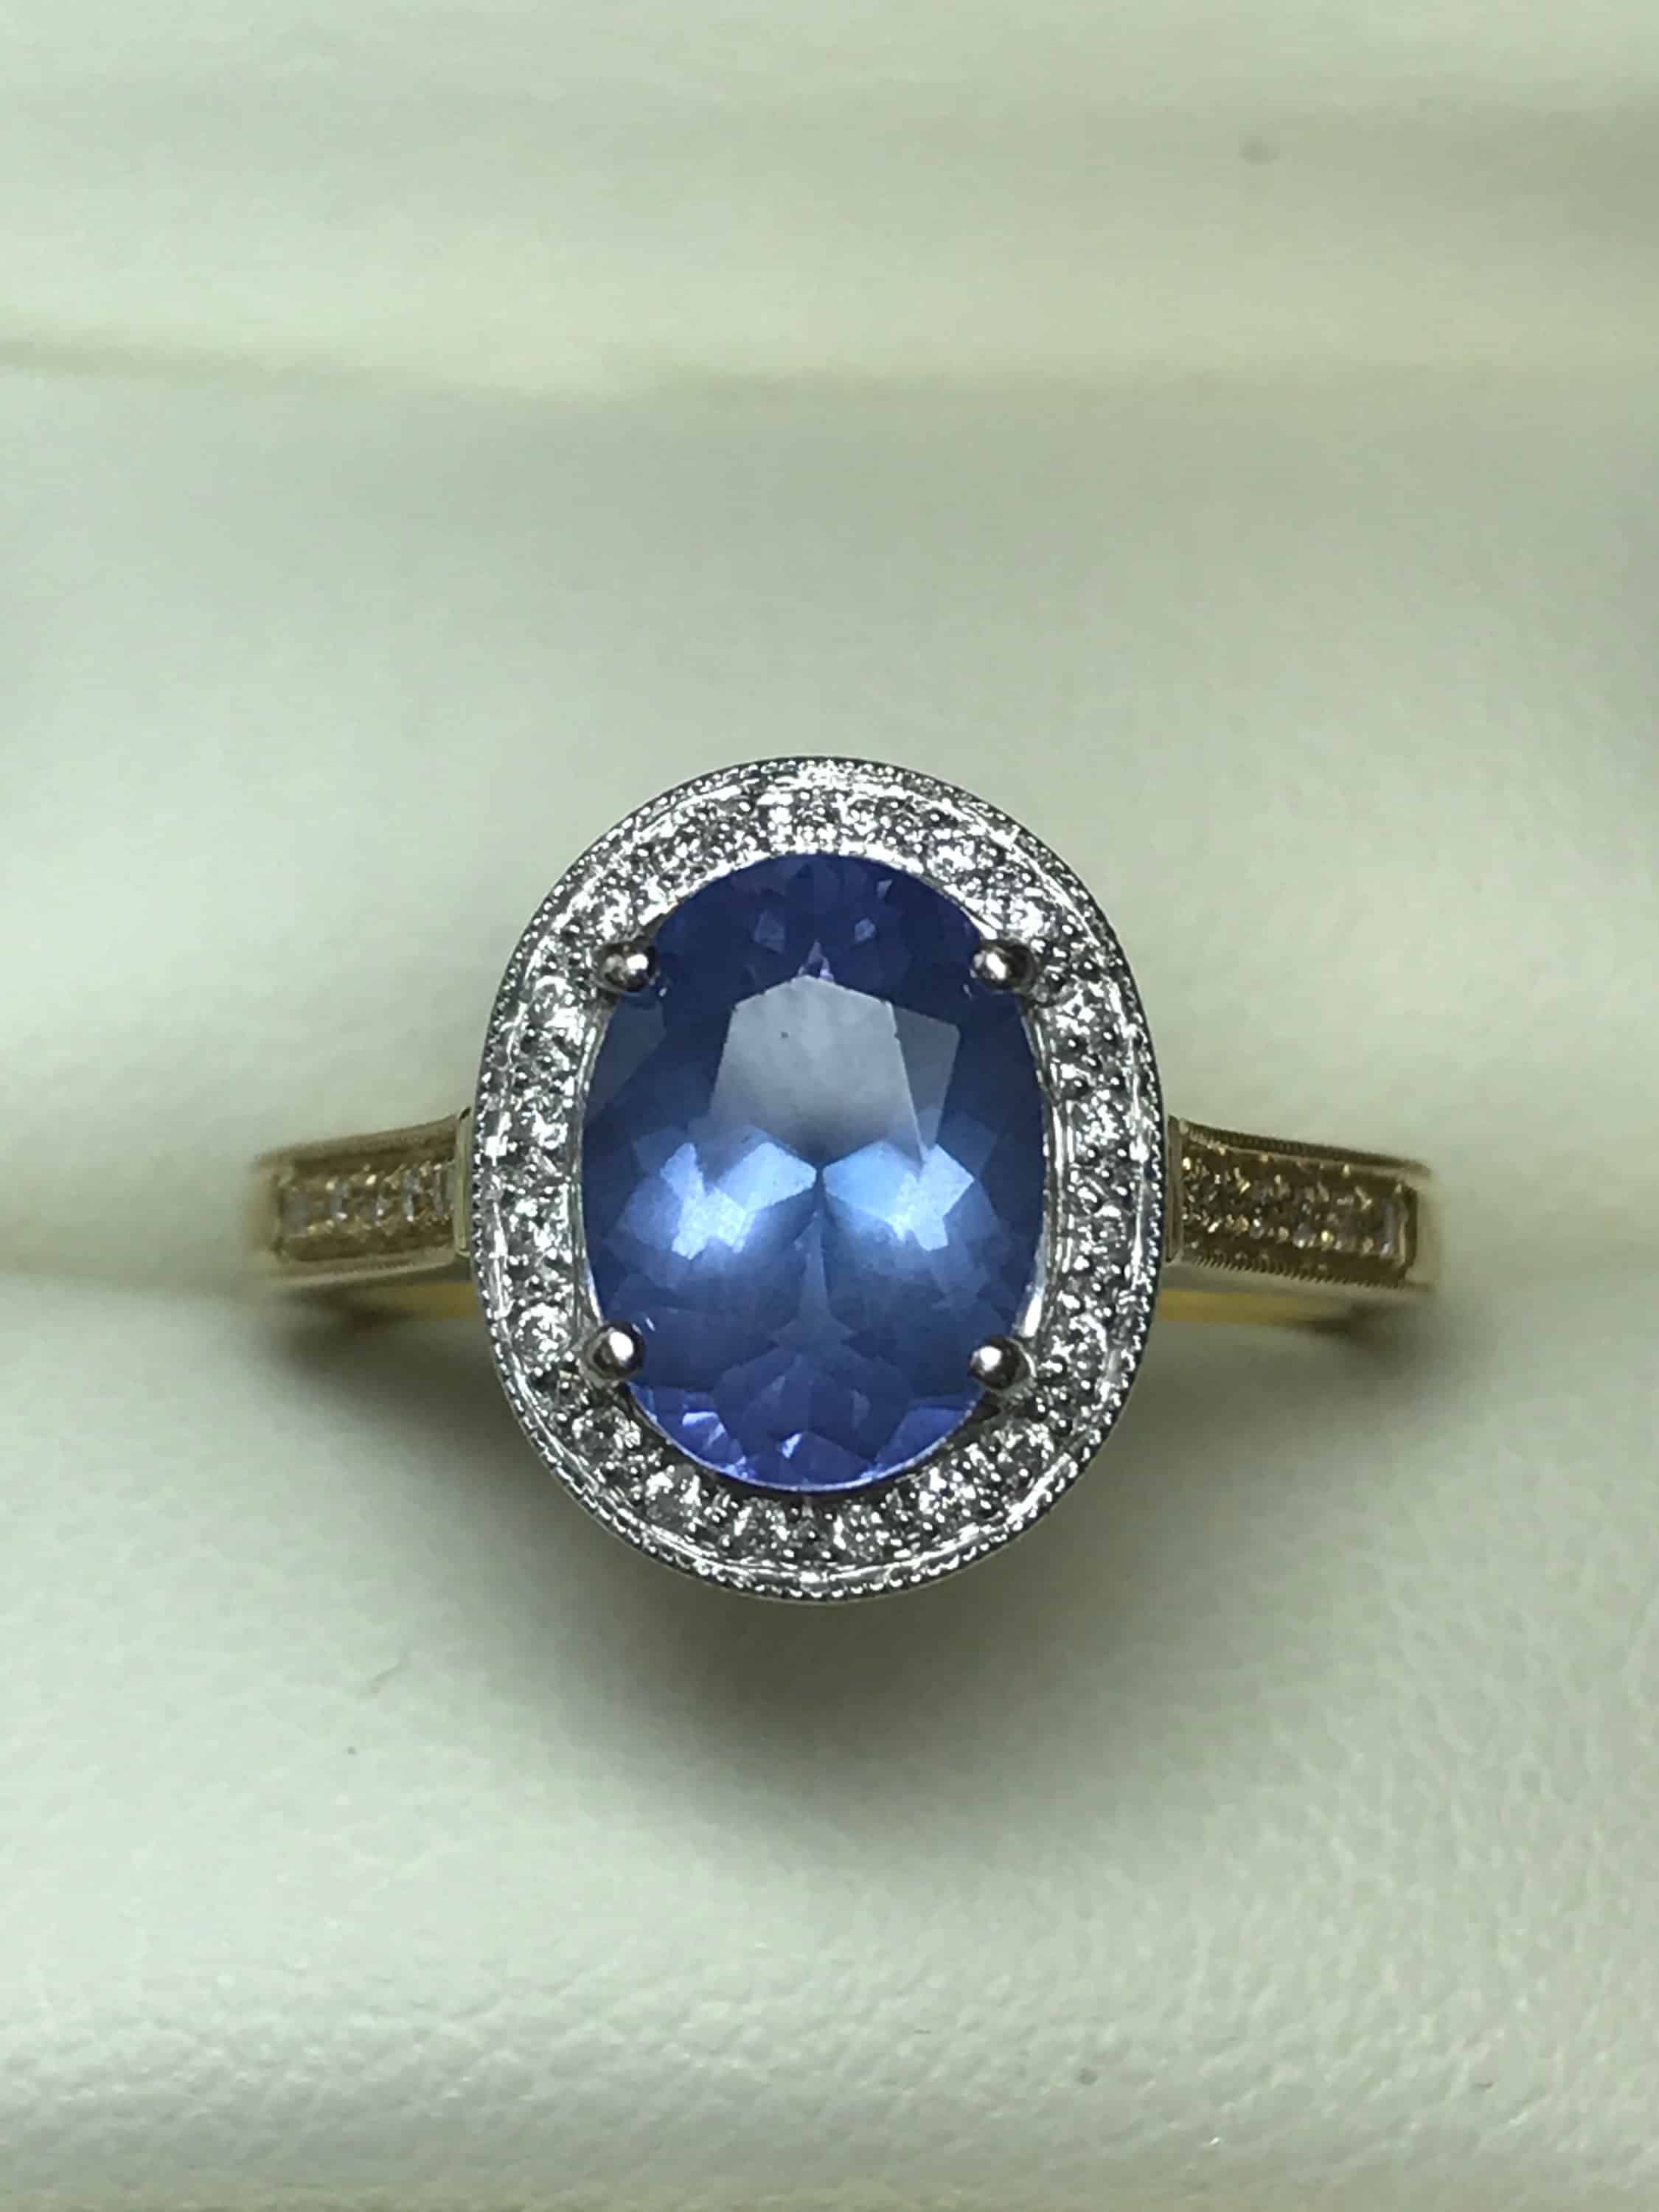 and rings j master scn carat for jewelry ring sale at fashion tanzanite id diamond princess cut